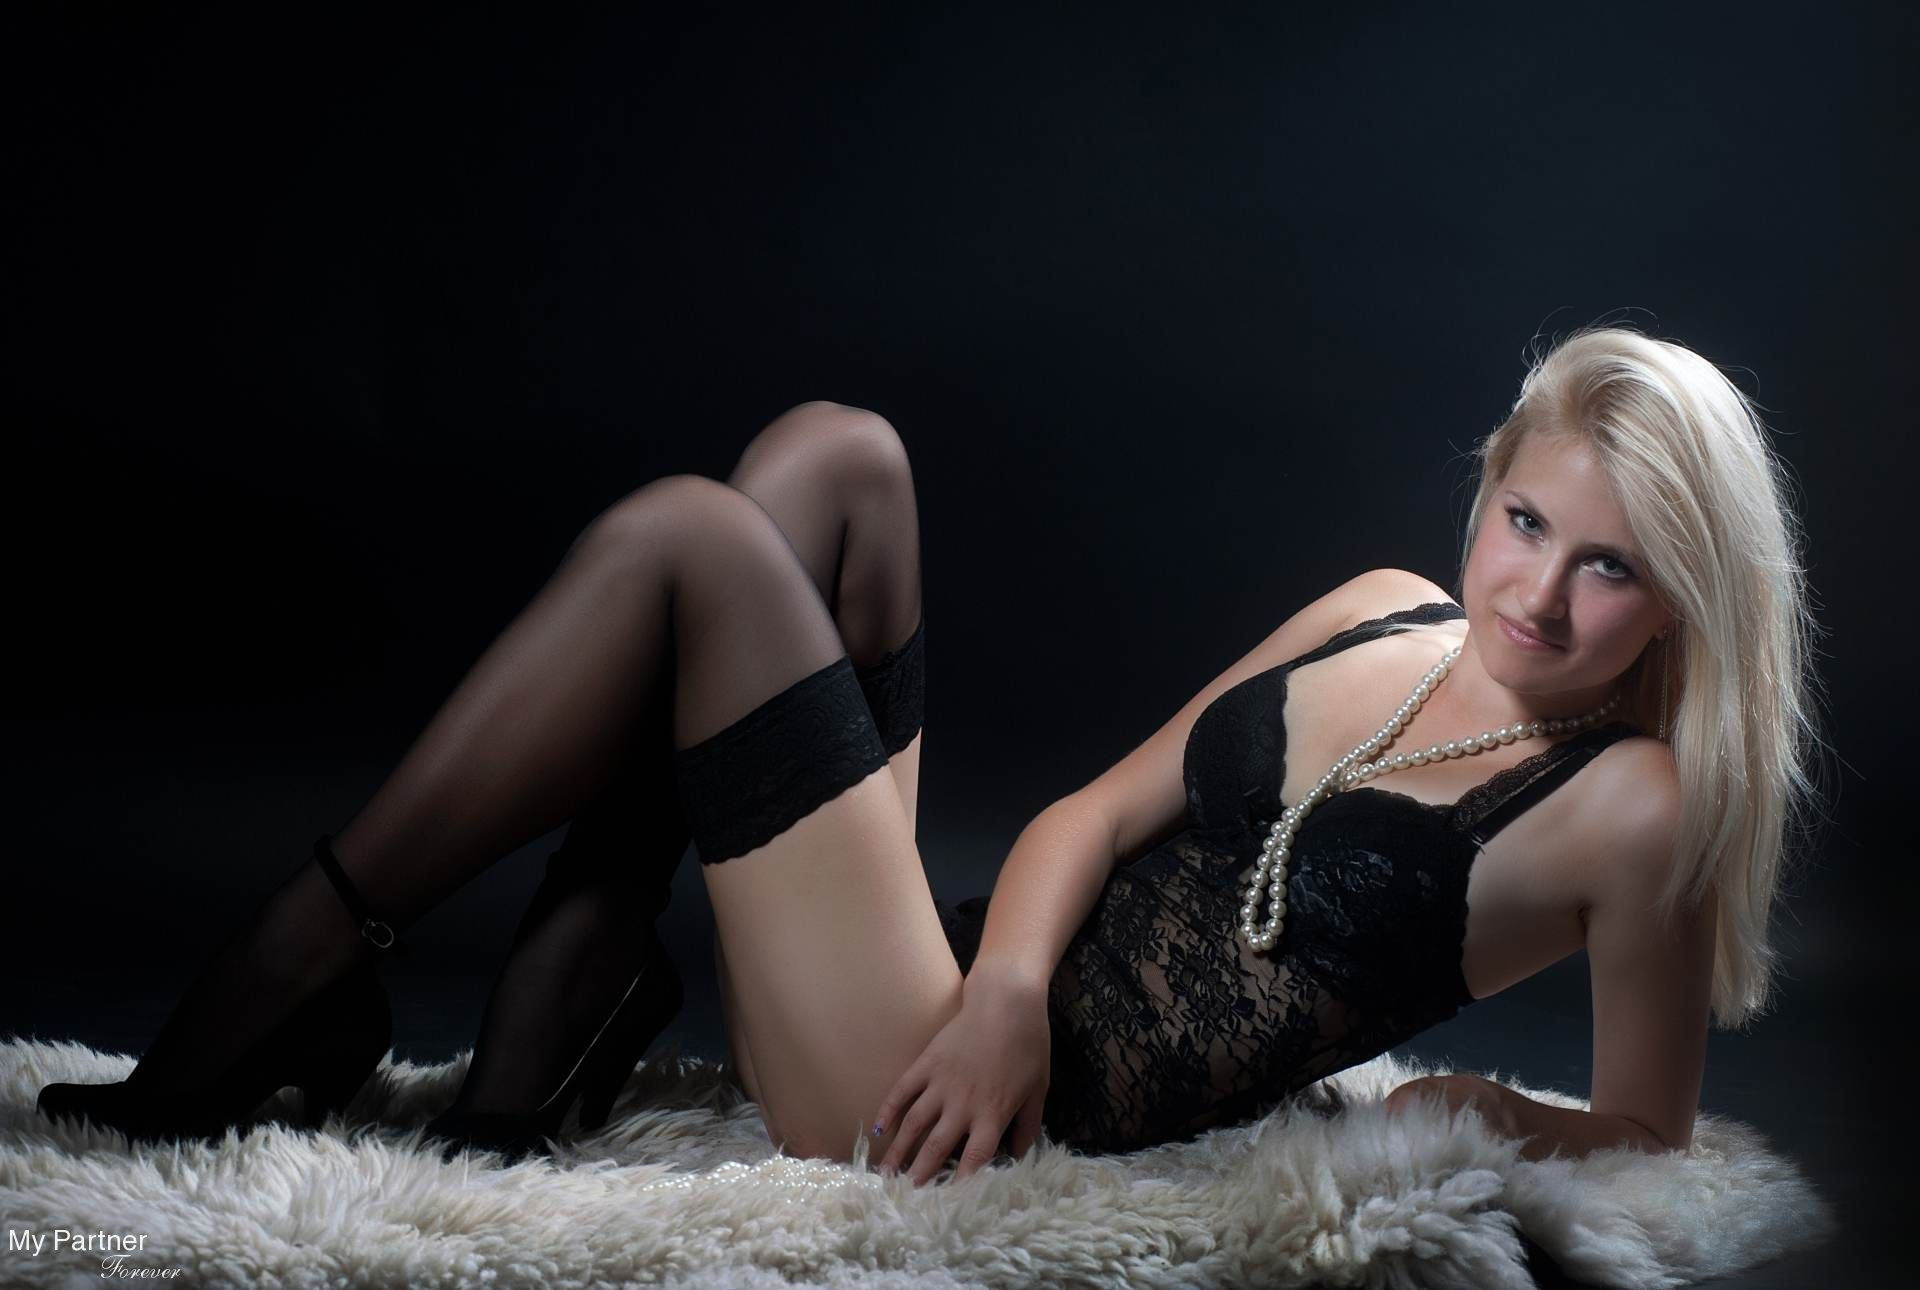 Ukrainian Women Russian Women 30